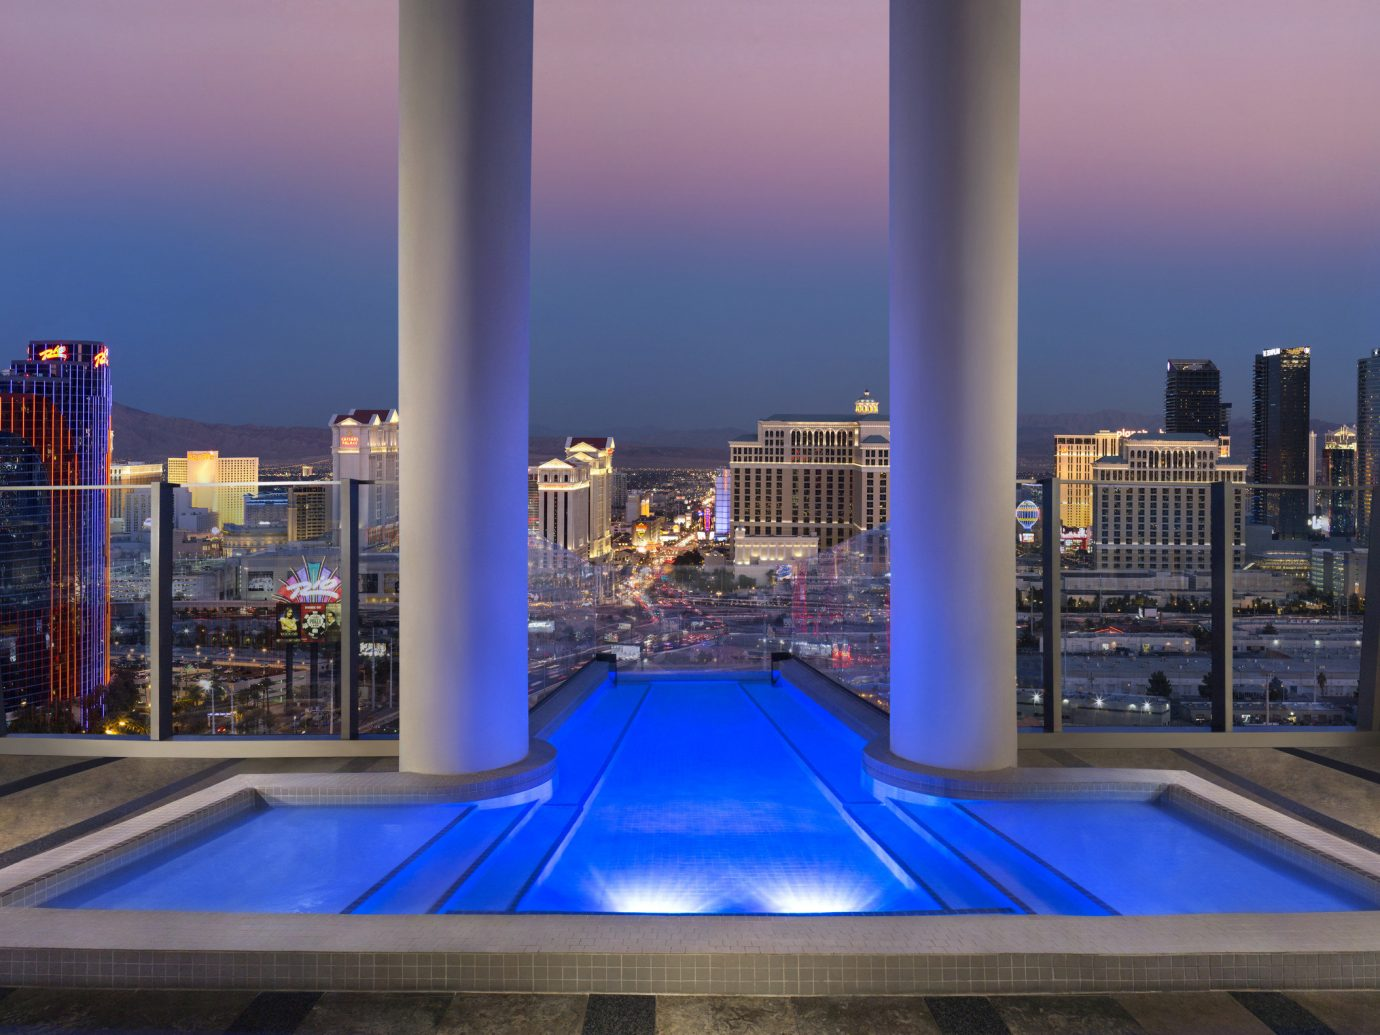 sky villa on palms casino resort - matini hotels